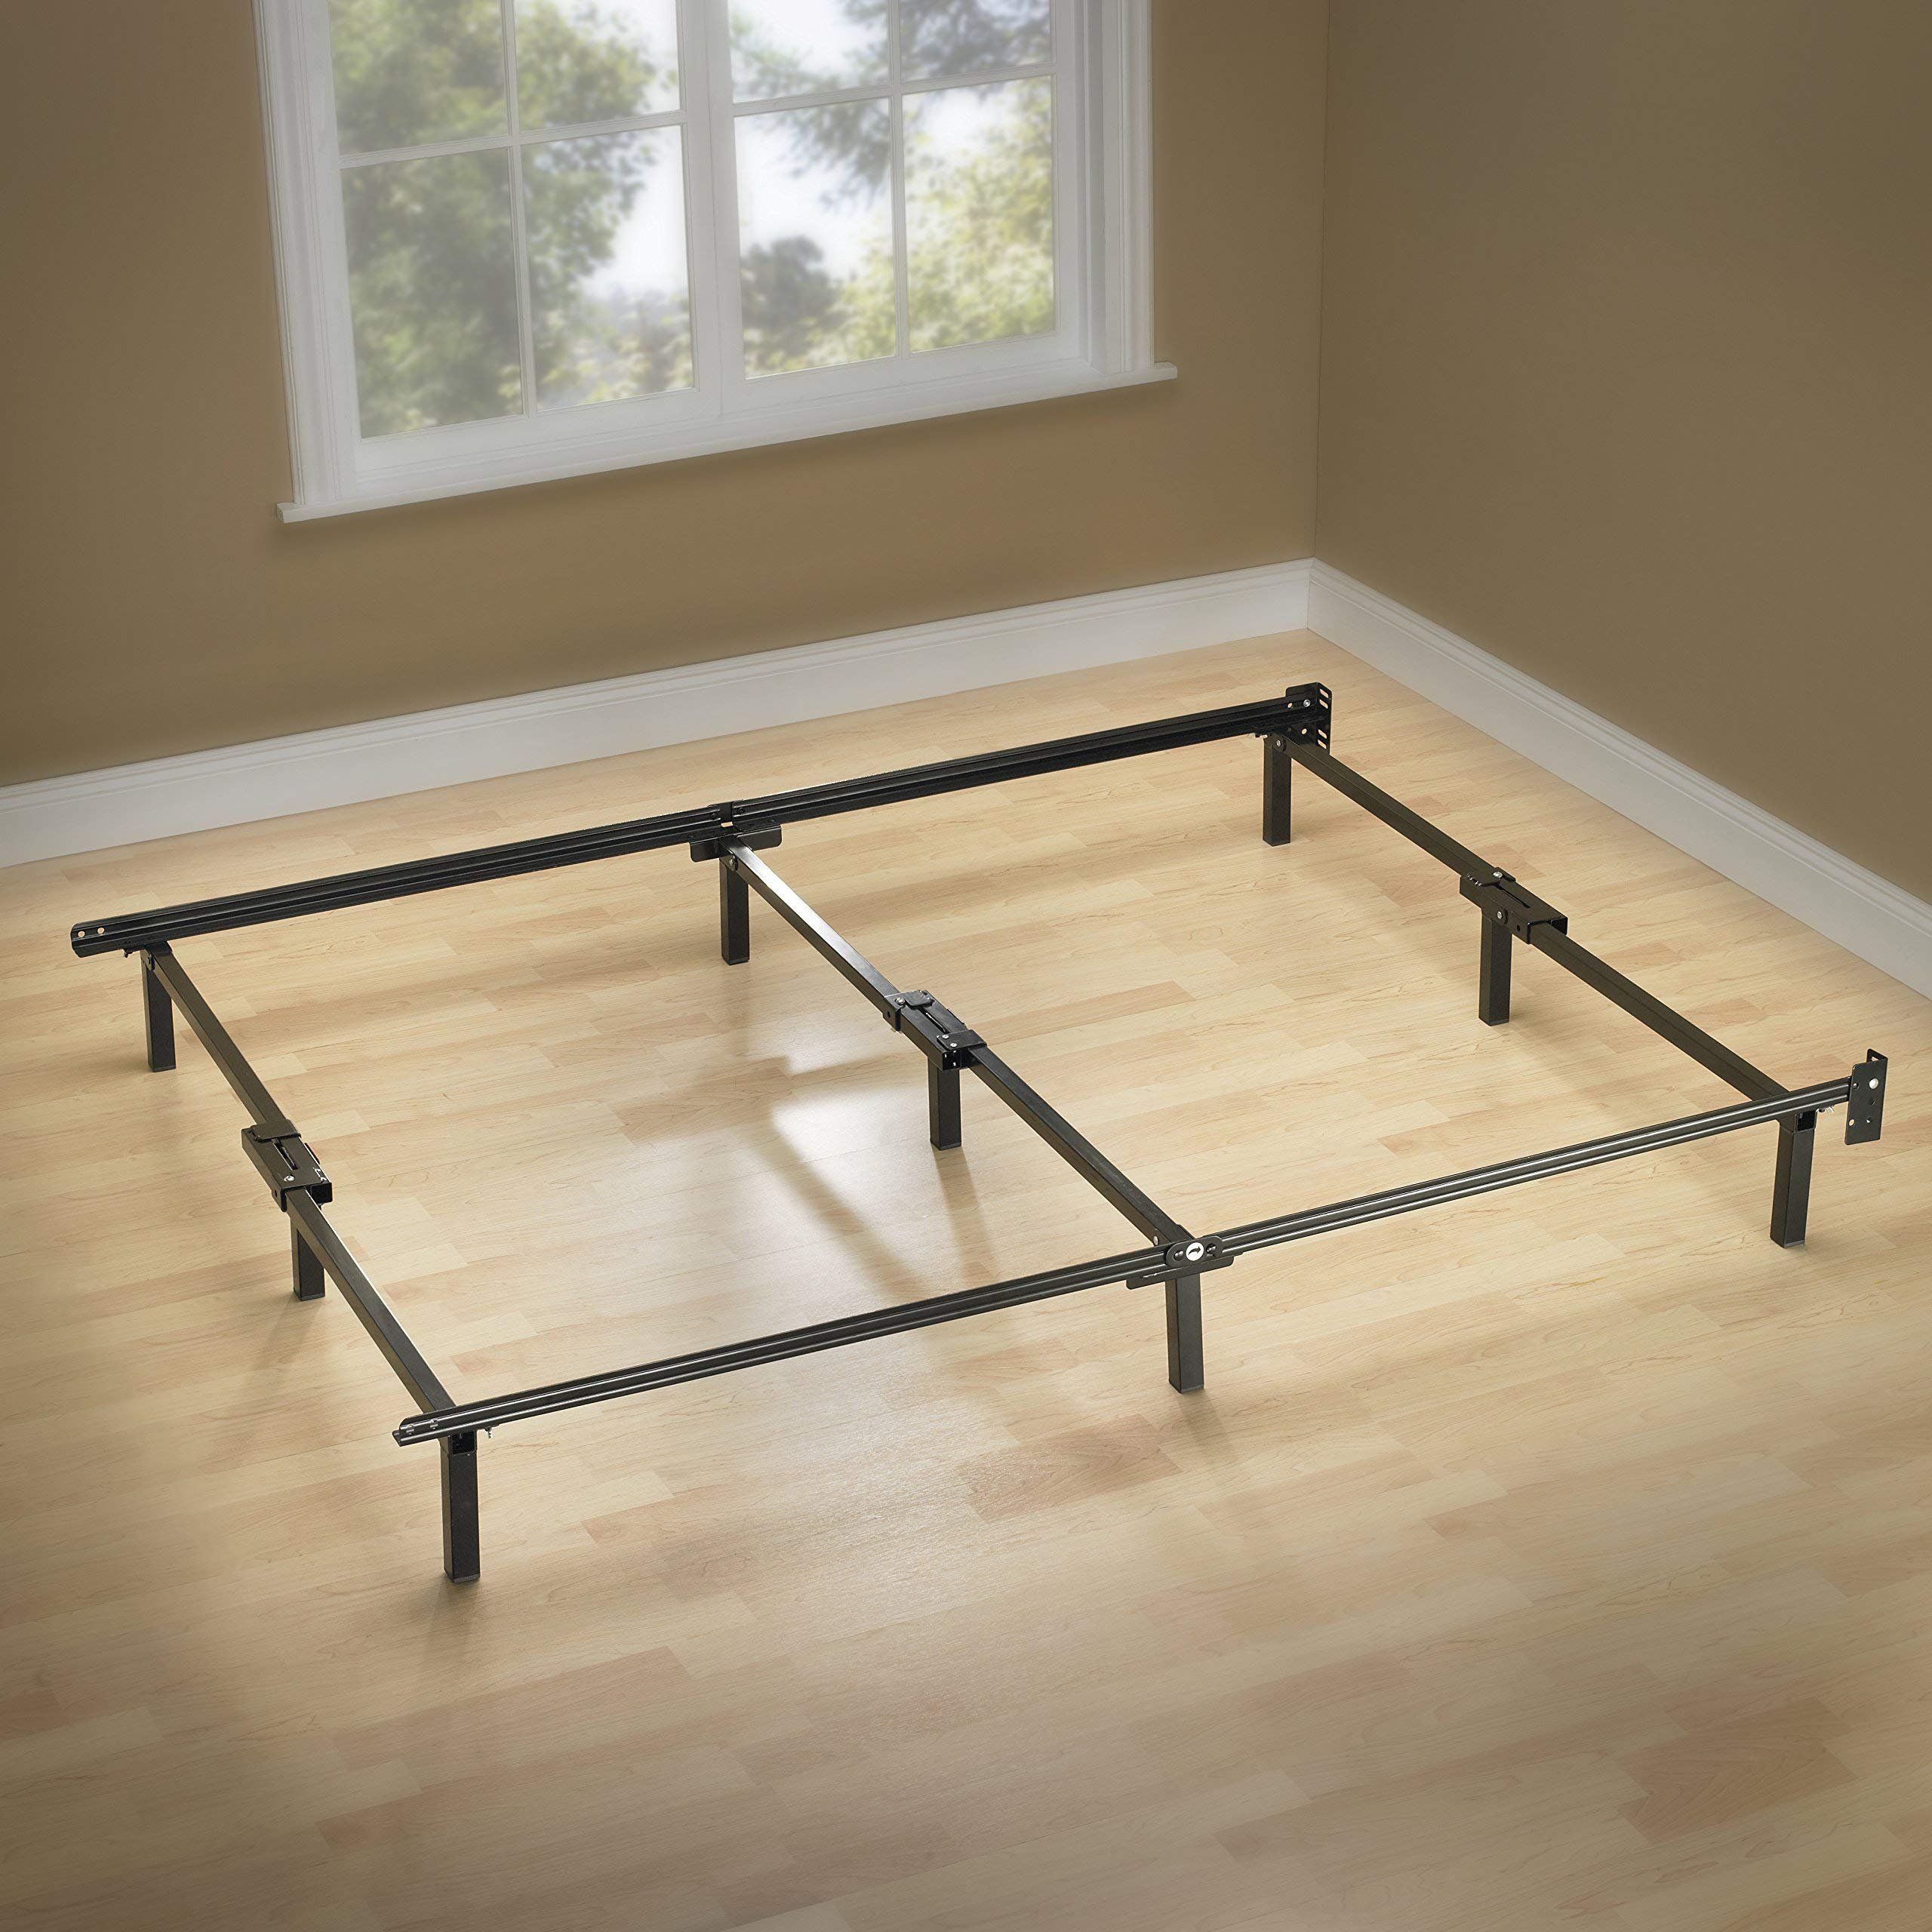 Sleep Revolution Compack Bed Frame with 9-Leg Support System - King (Renewed) by Sleep Revolution